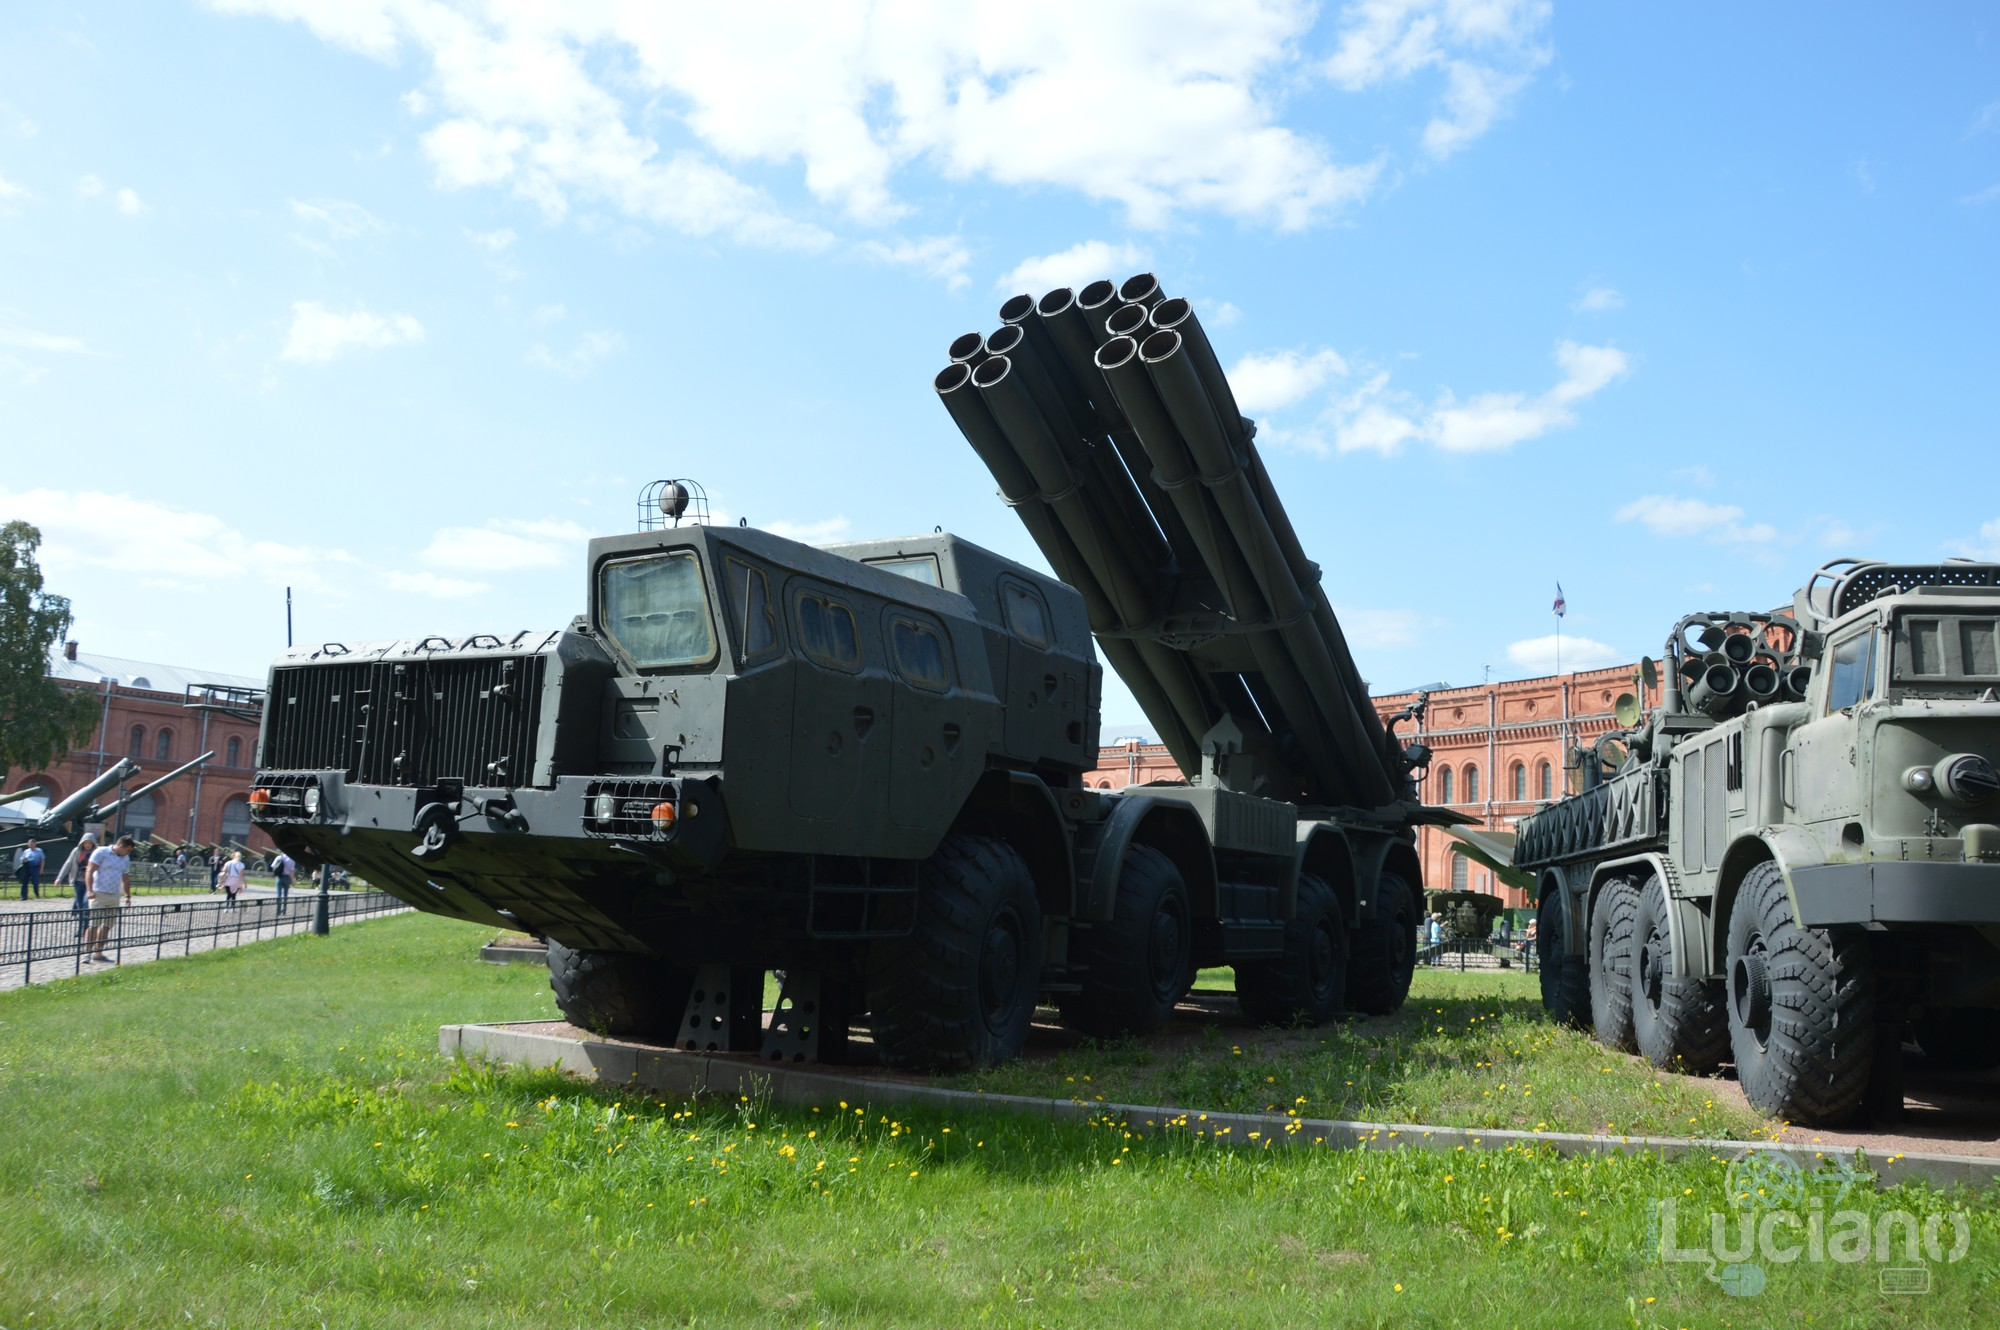 Military-Historical-Museum-of-Artillery-Engineer-and-Signal-Corps-St-Petersburg-Russia-Luciano-Blancato- (27)